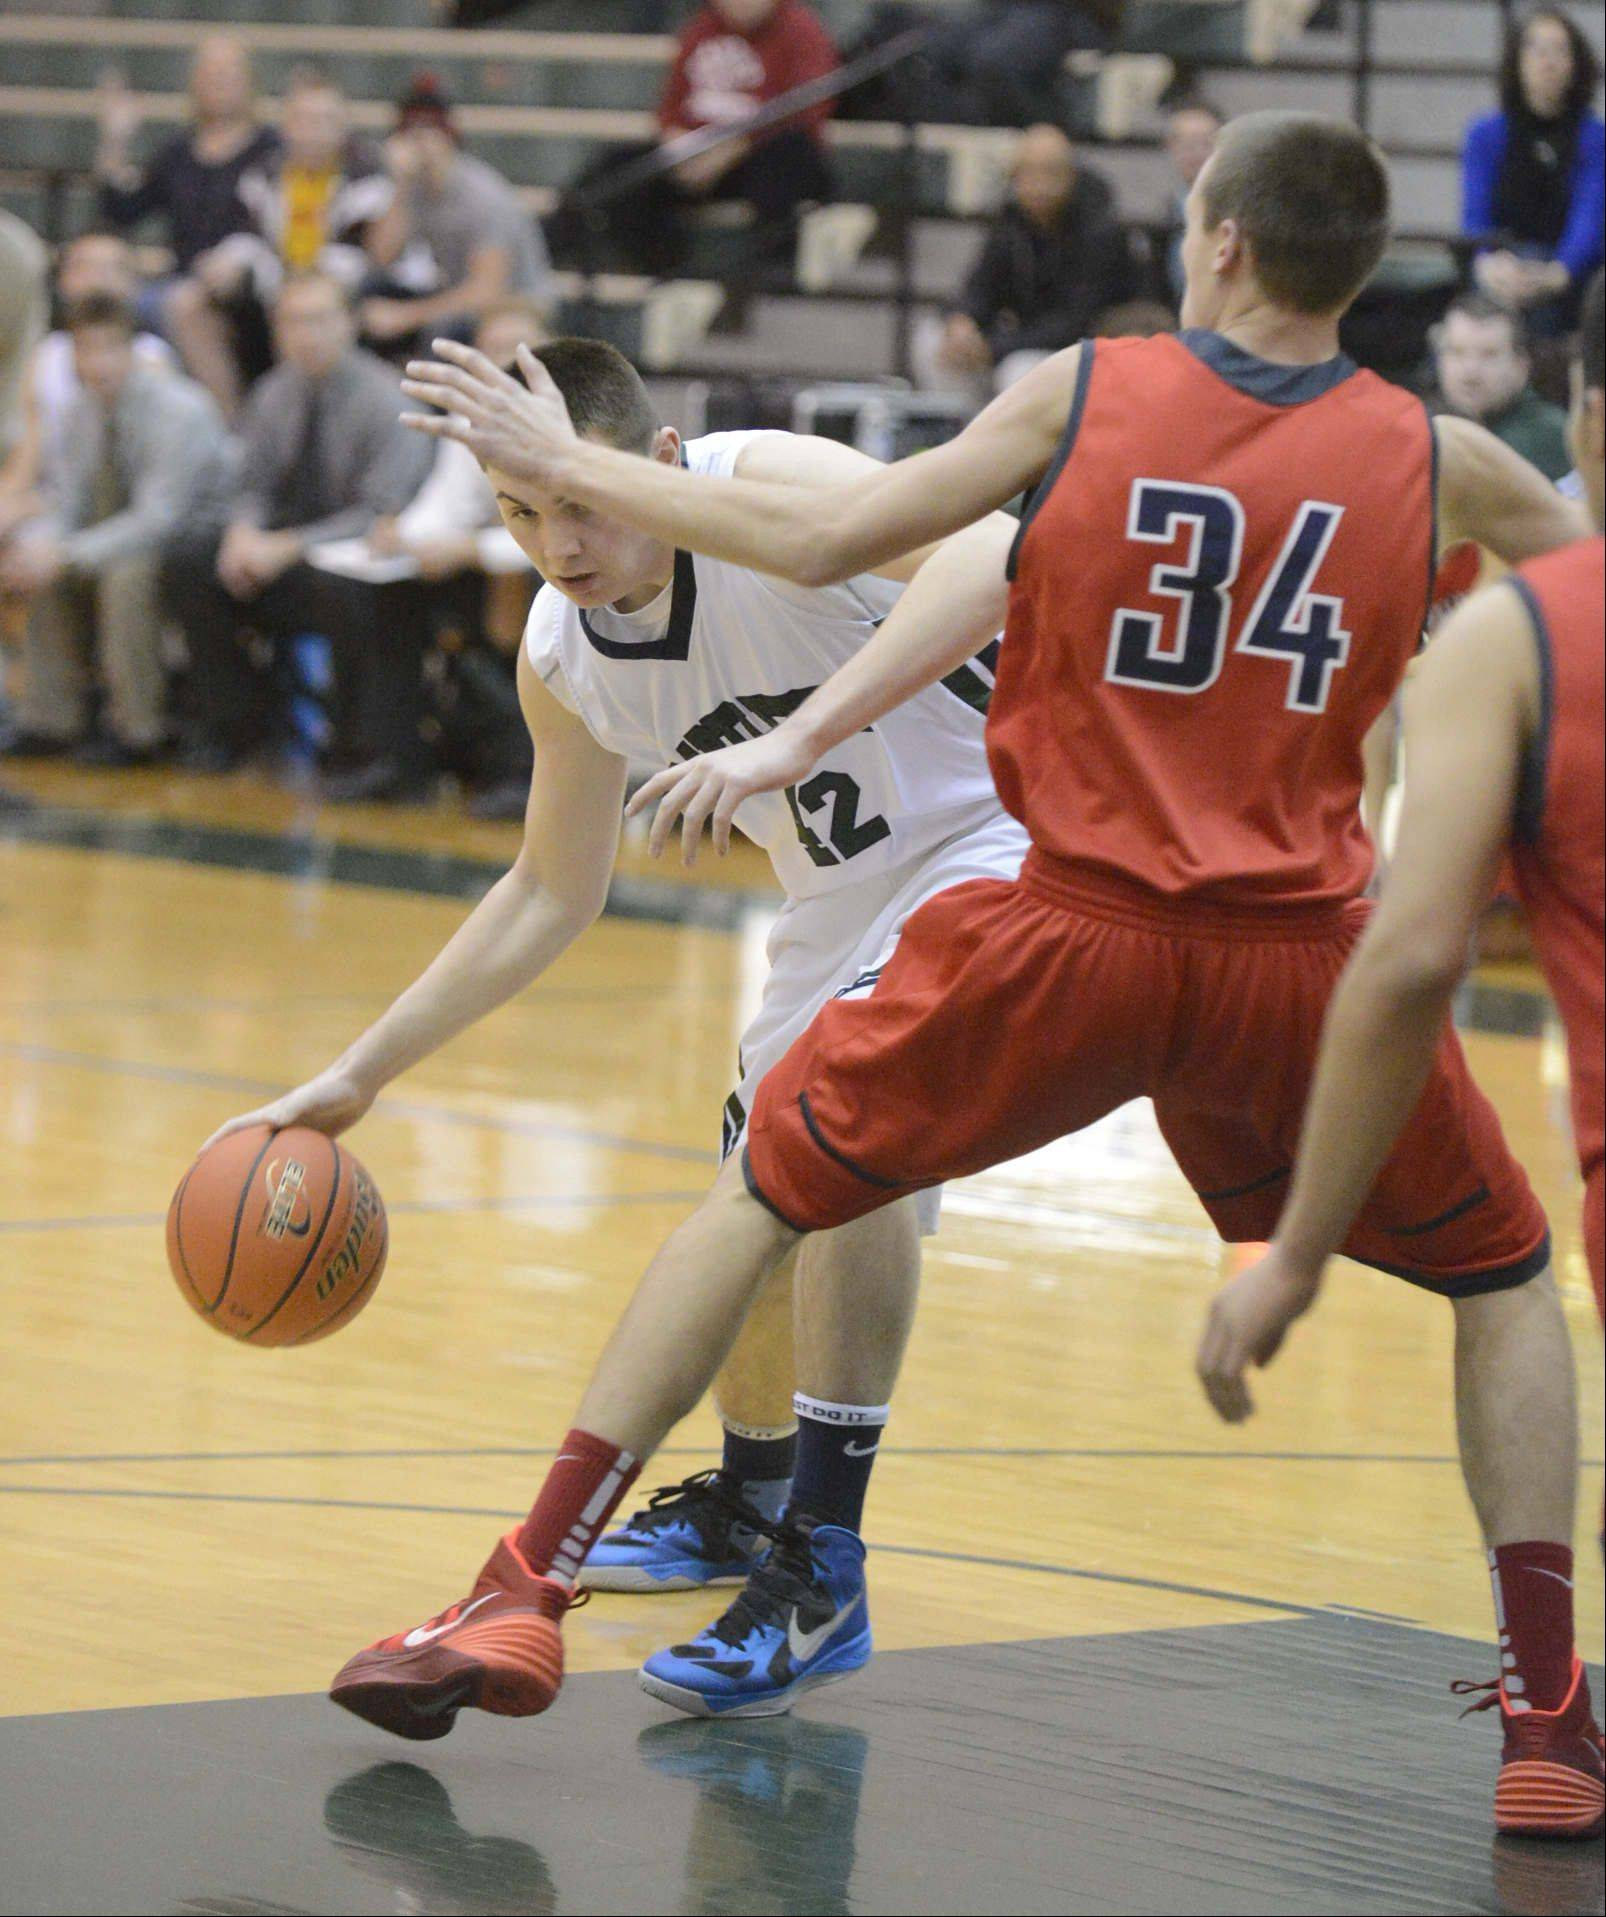 Images from the South Elgin vs. Bartlett boys basketball game Friday, December 13, 2013.